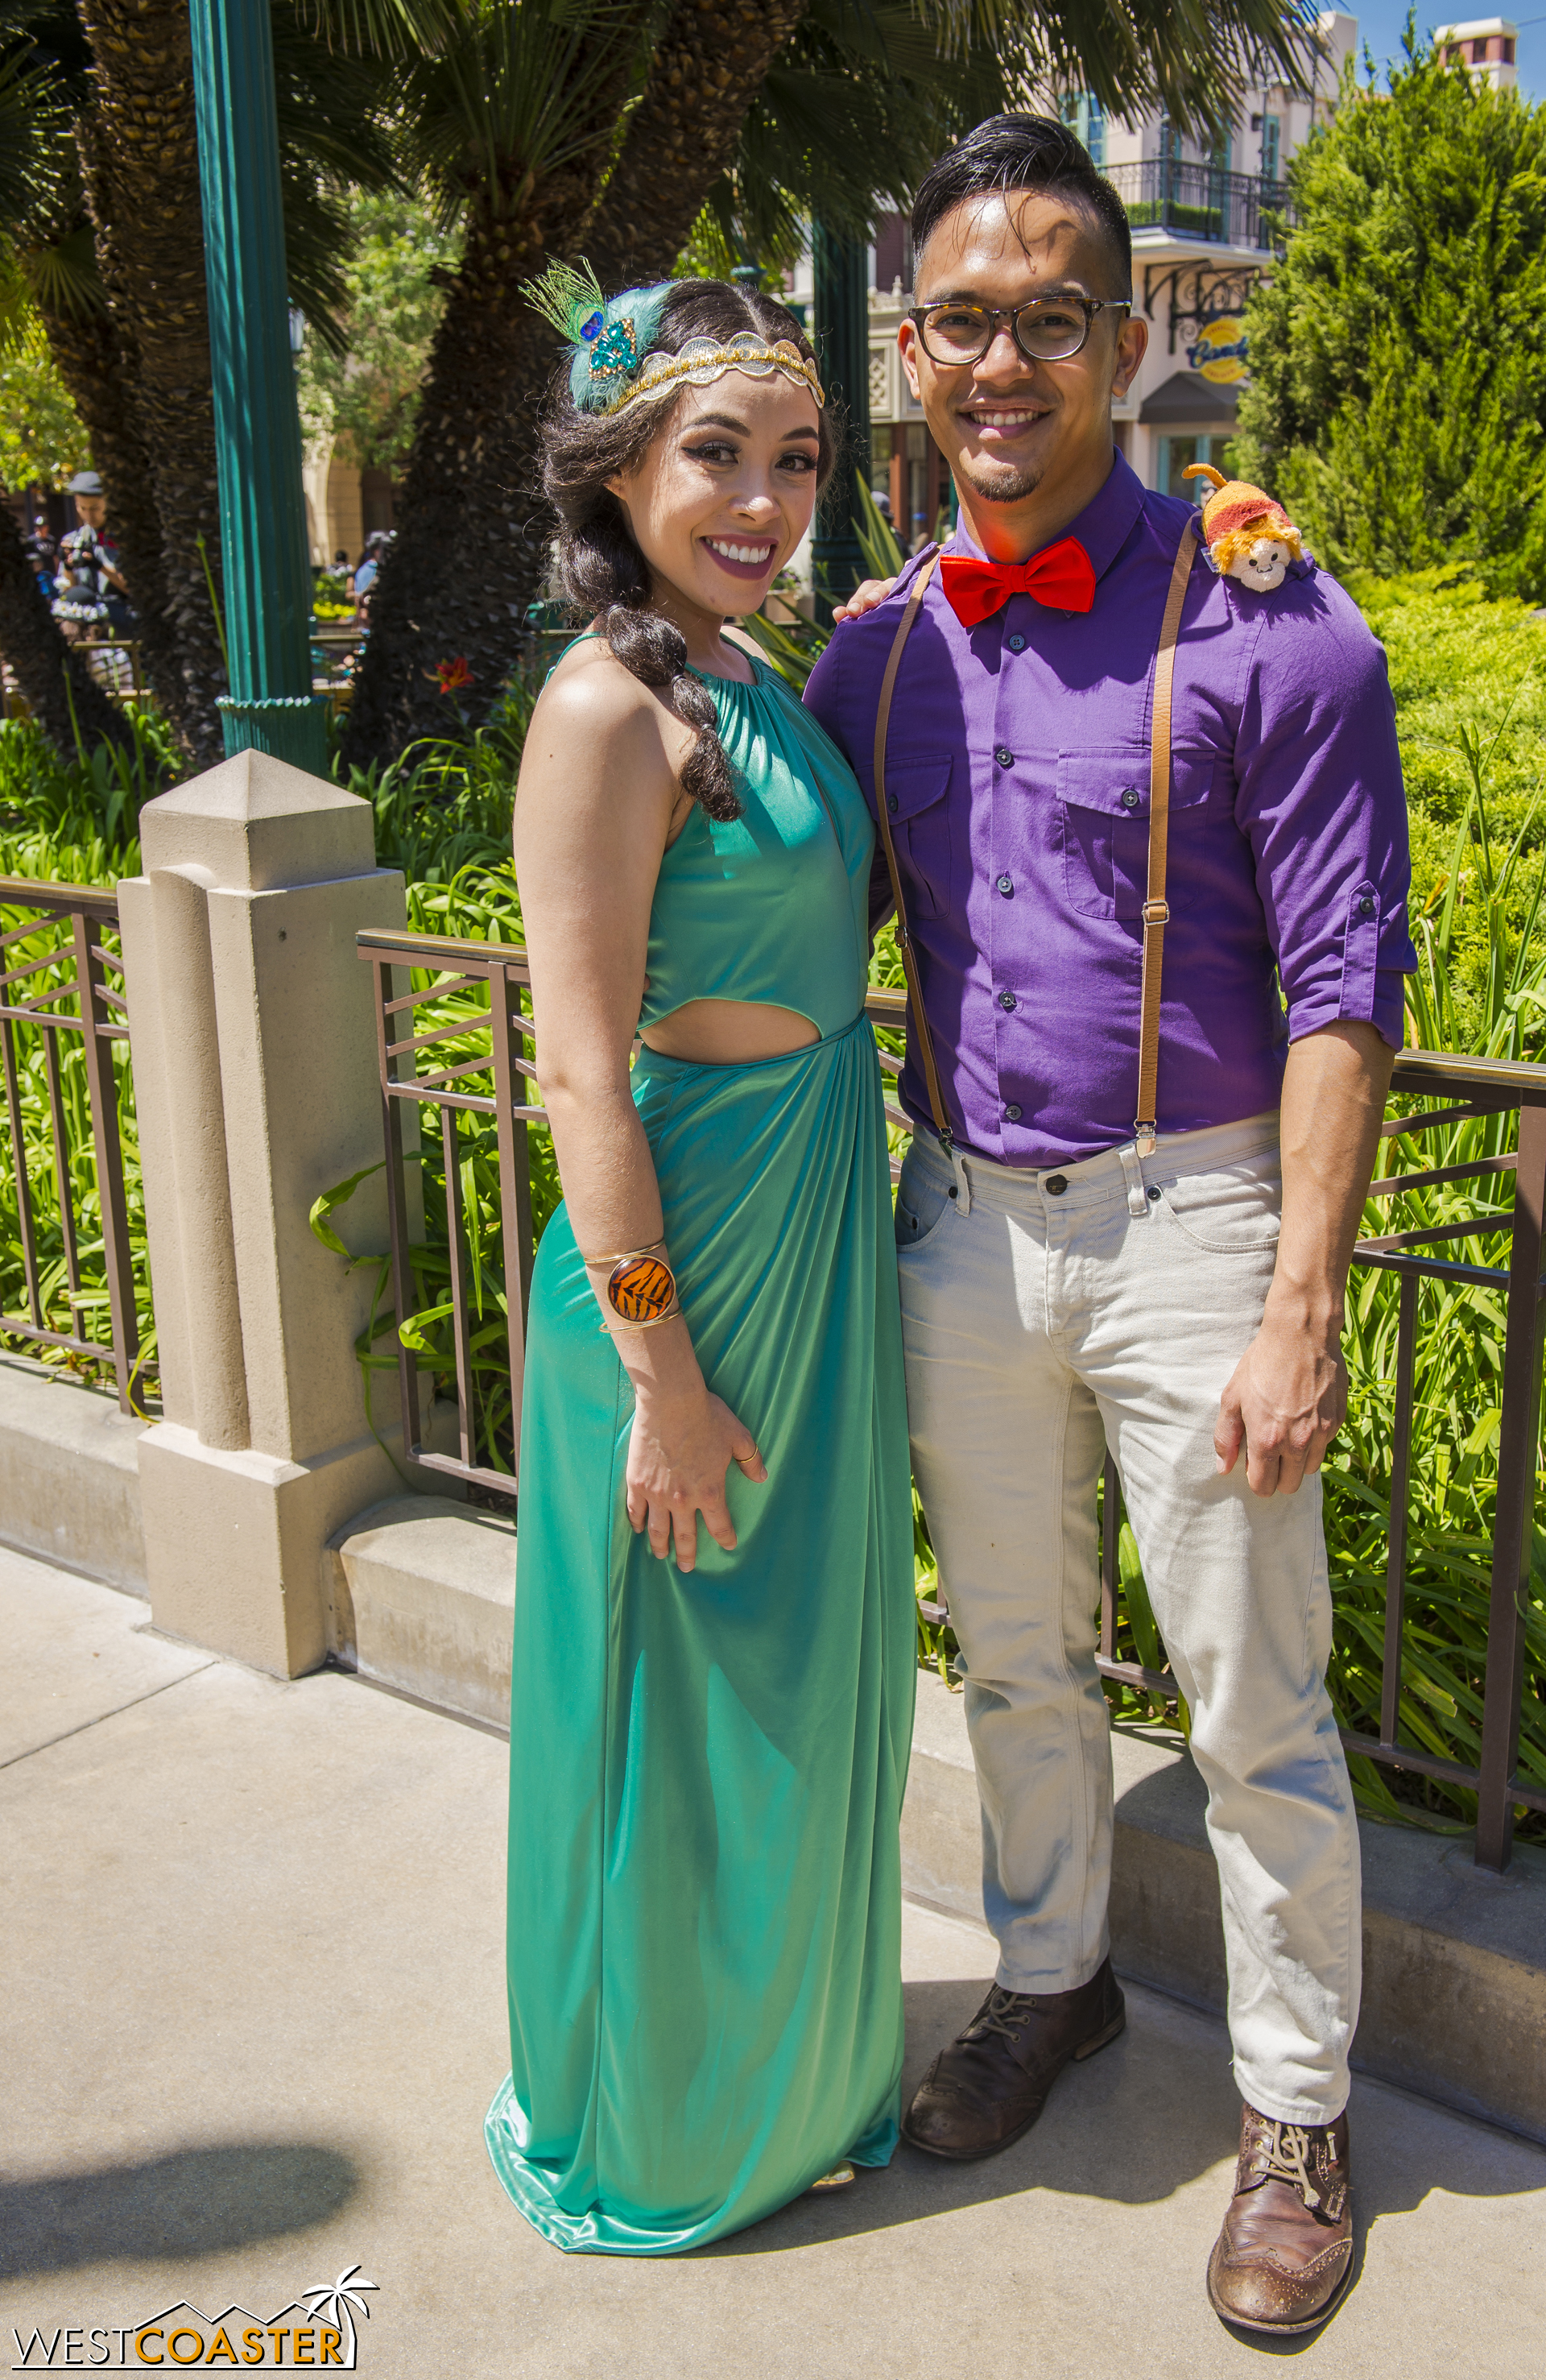 This Jasmine and Aladdin couple showcased the range of Disneybounding, from more ornate to derivative.